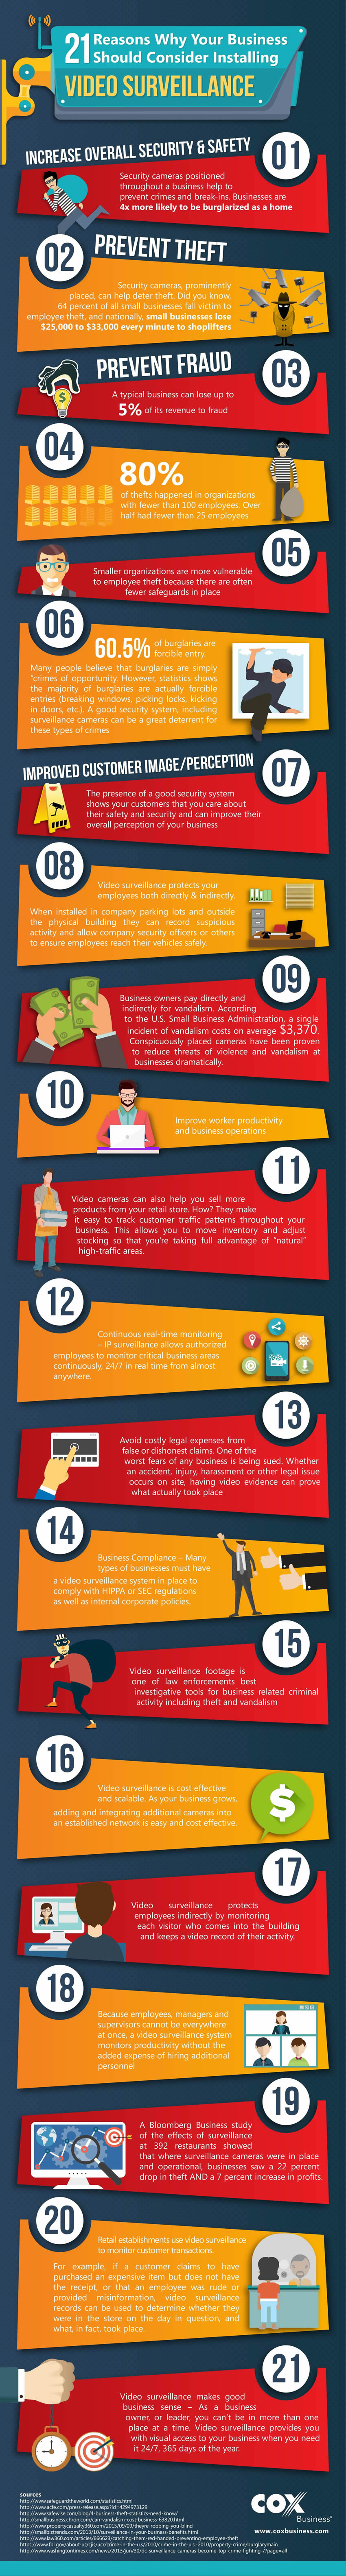 21 Reasons Why Your Business Should Consider Installing Video Surveillance Infographic - Final Version-850.jpg